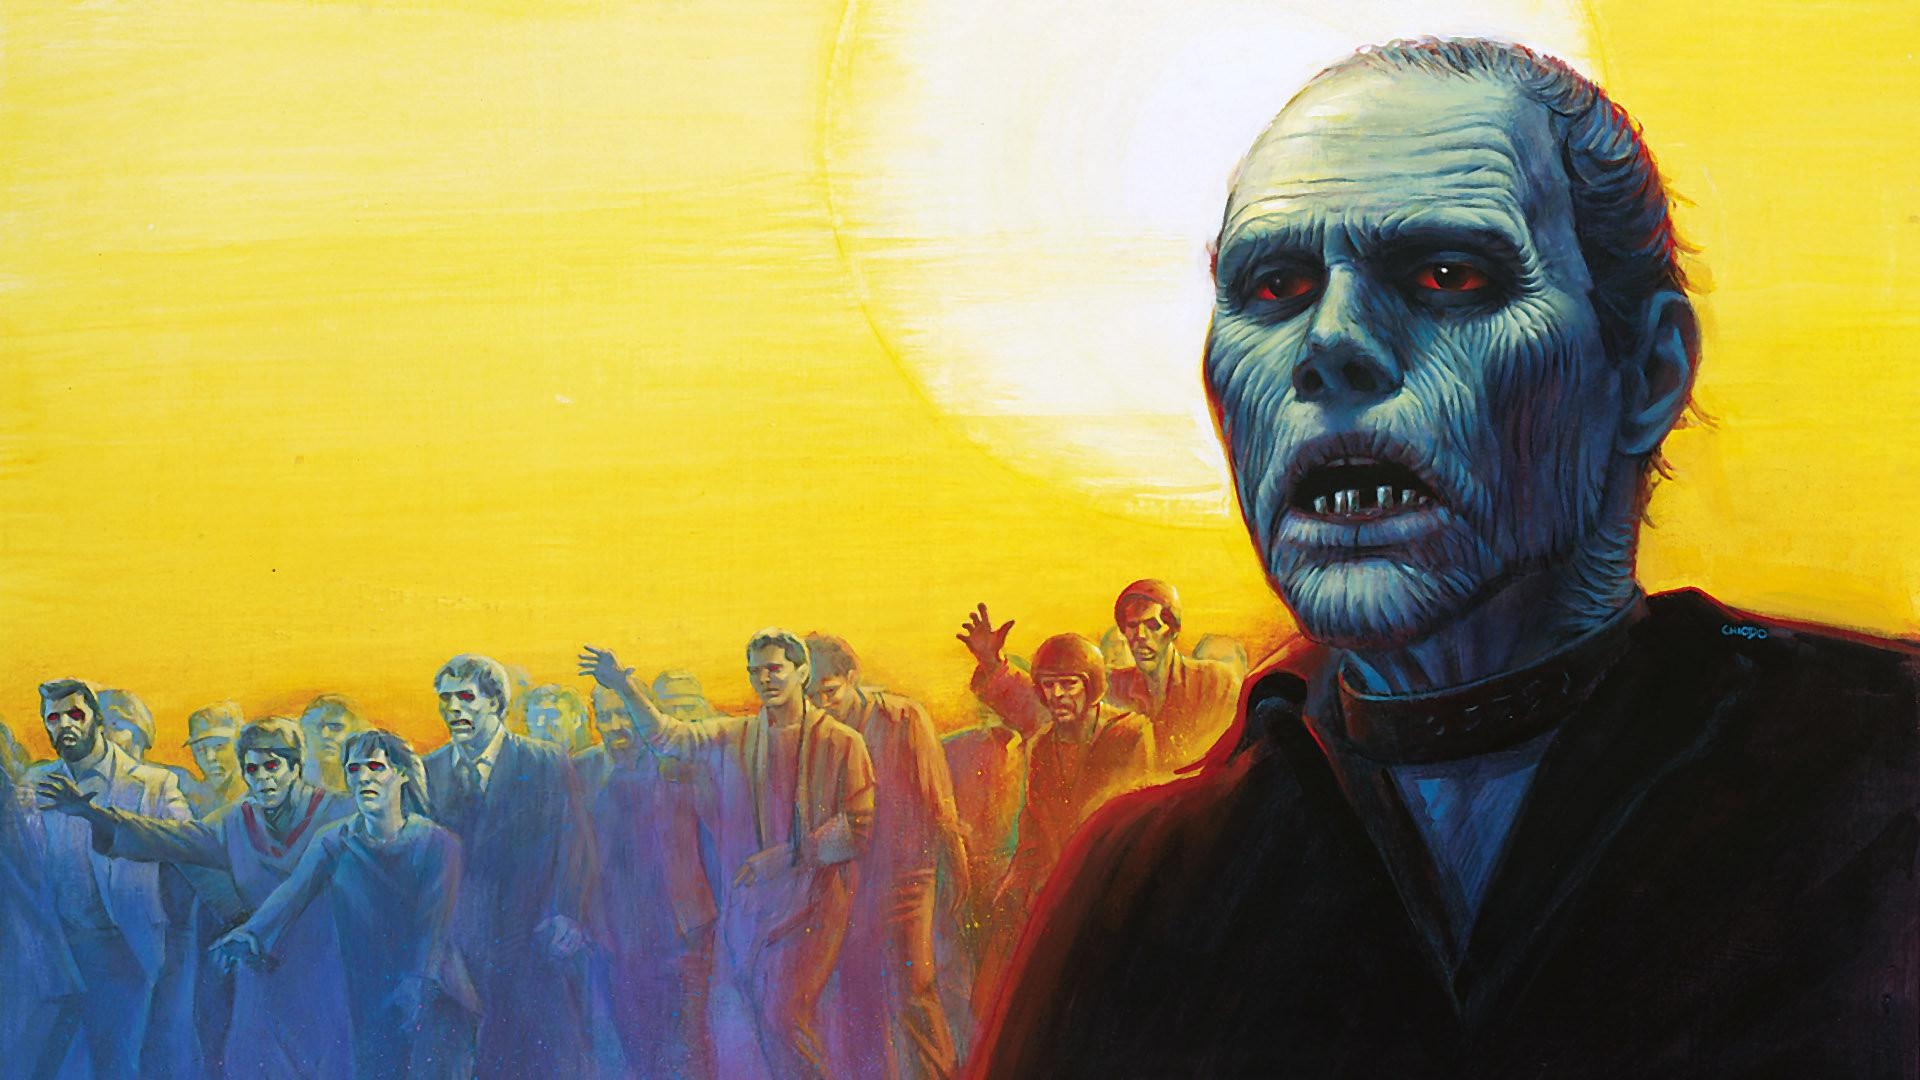 Romero's 'Day of the Dead' (1985): A Thought Provoking Classic